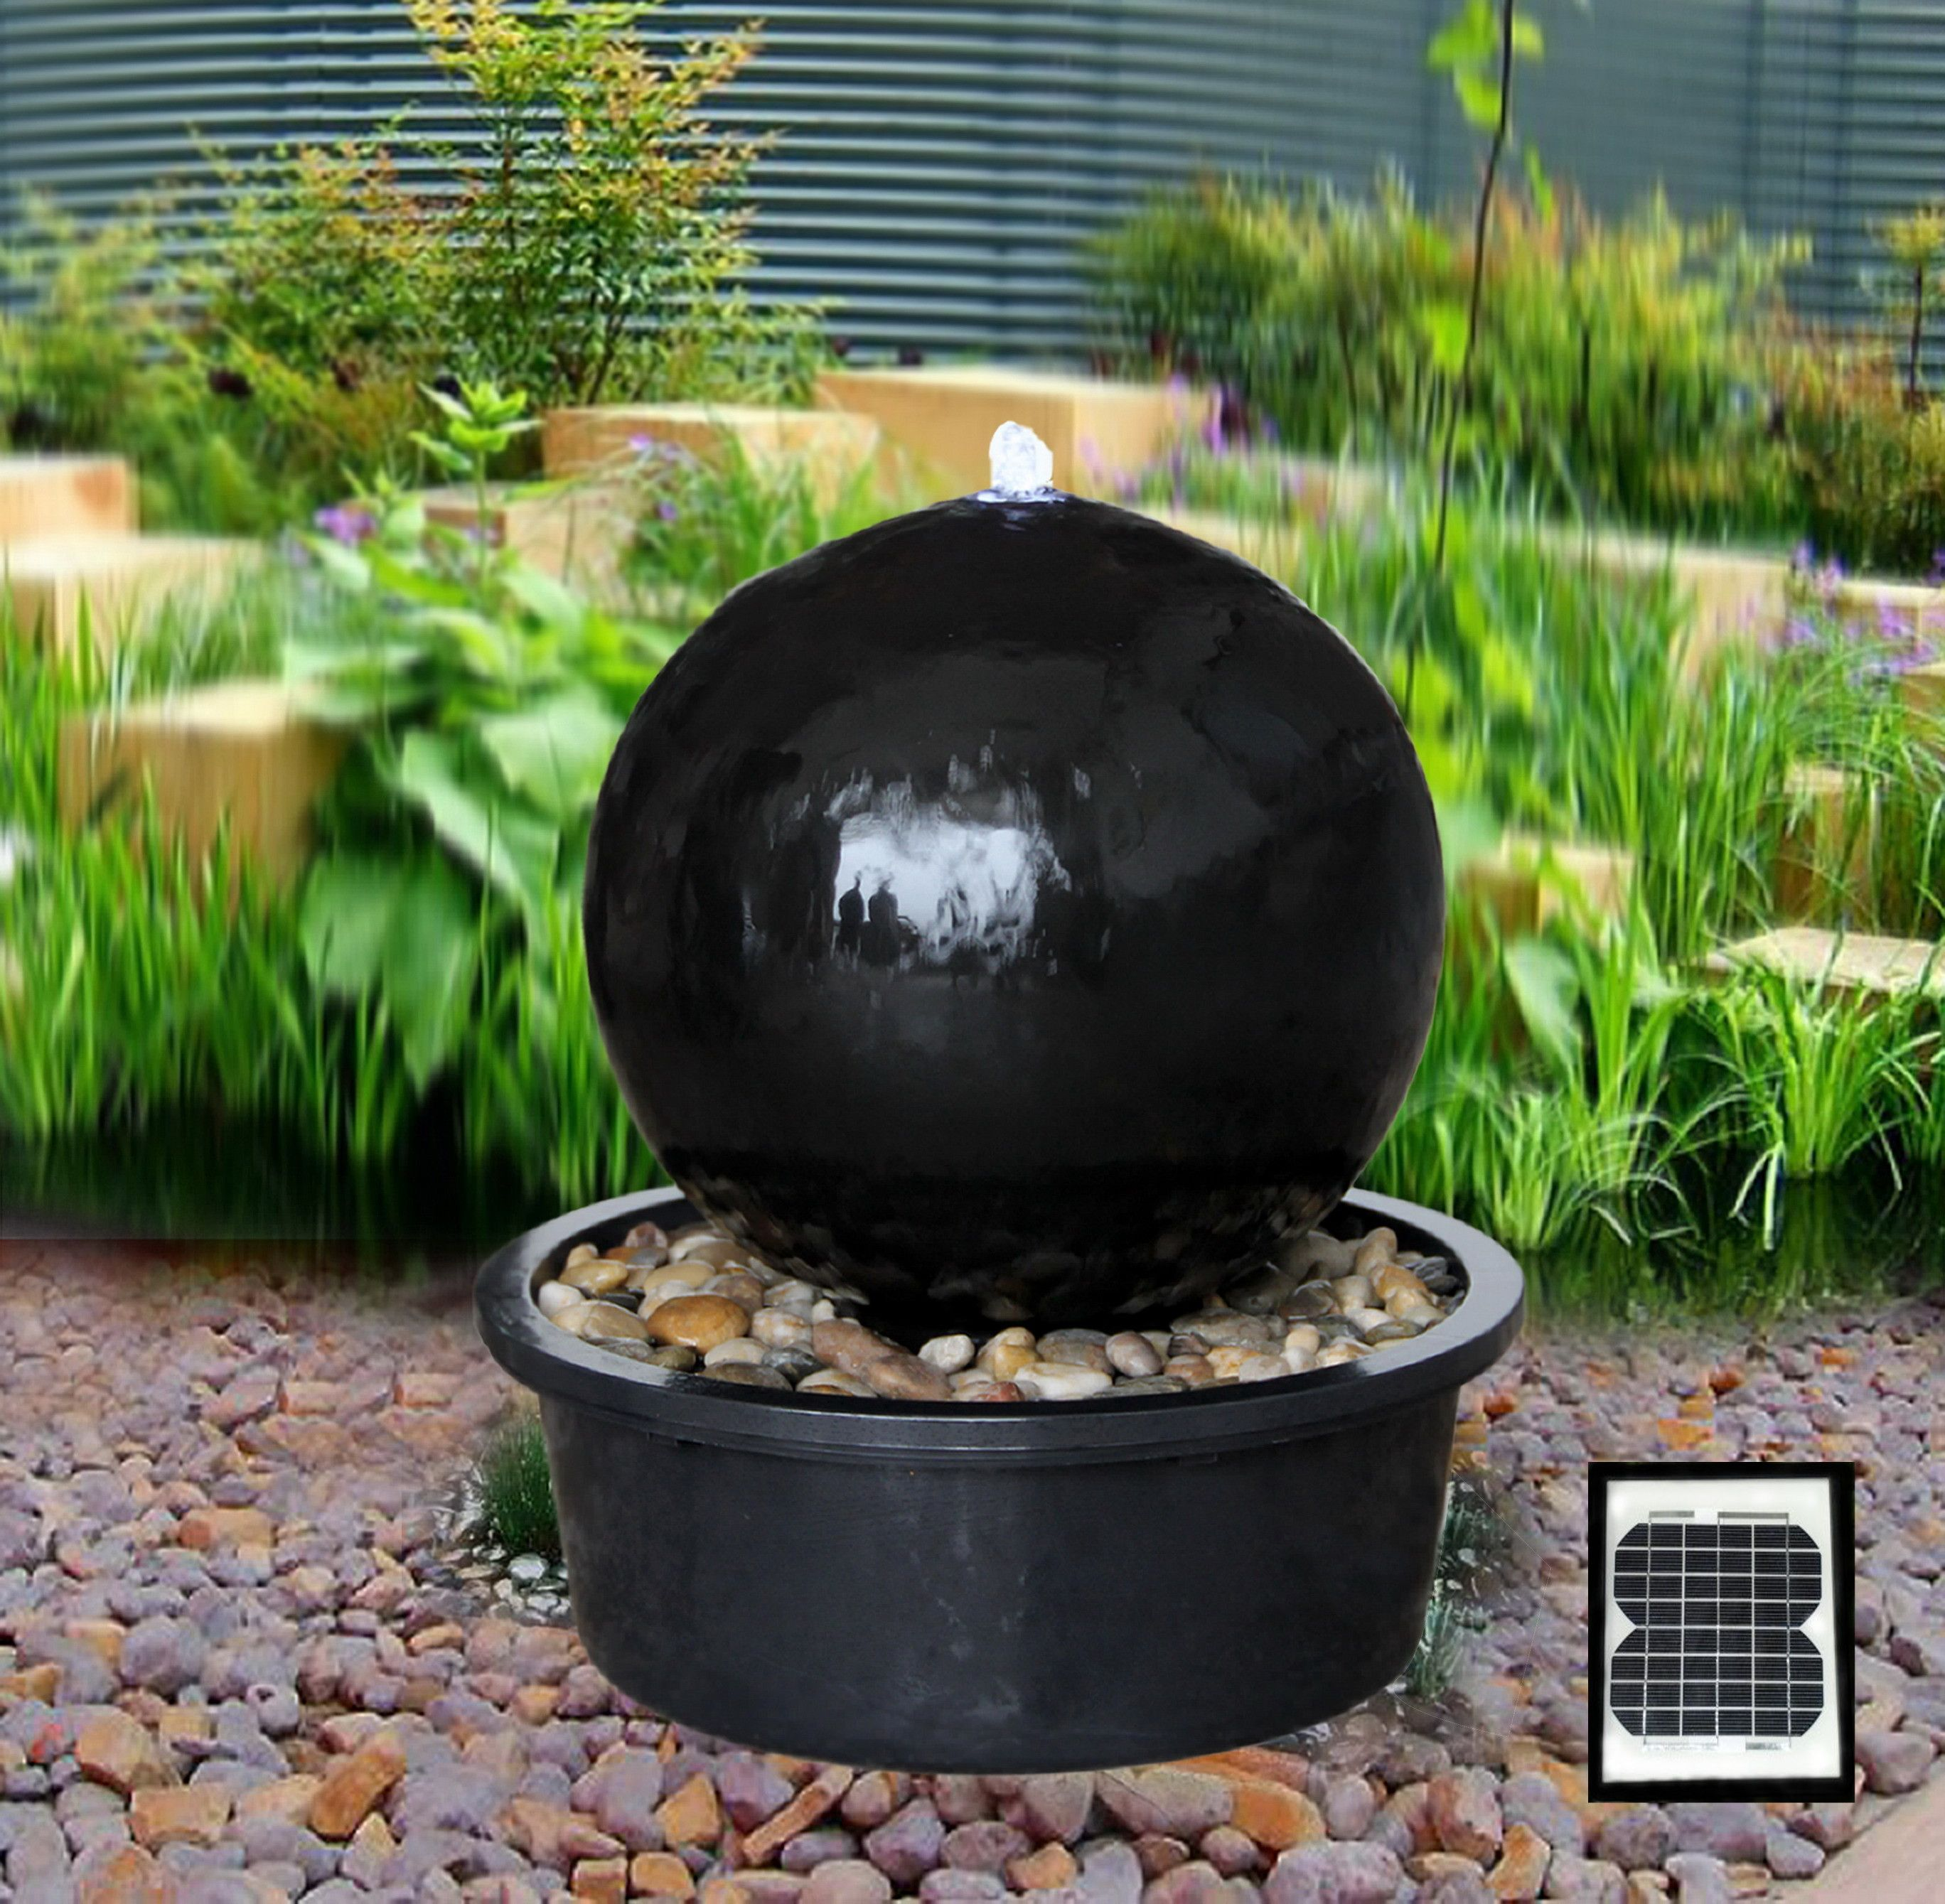 Solar Powered Black Ceramic Sphere Water Feature I Want This In